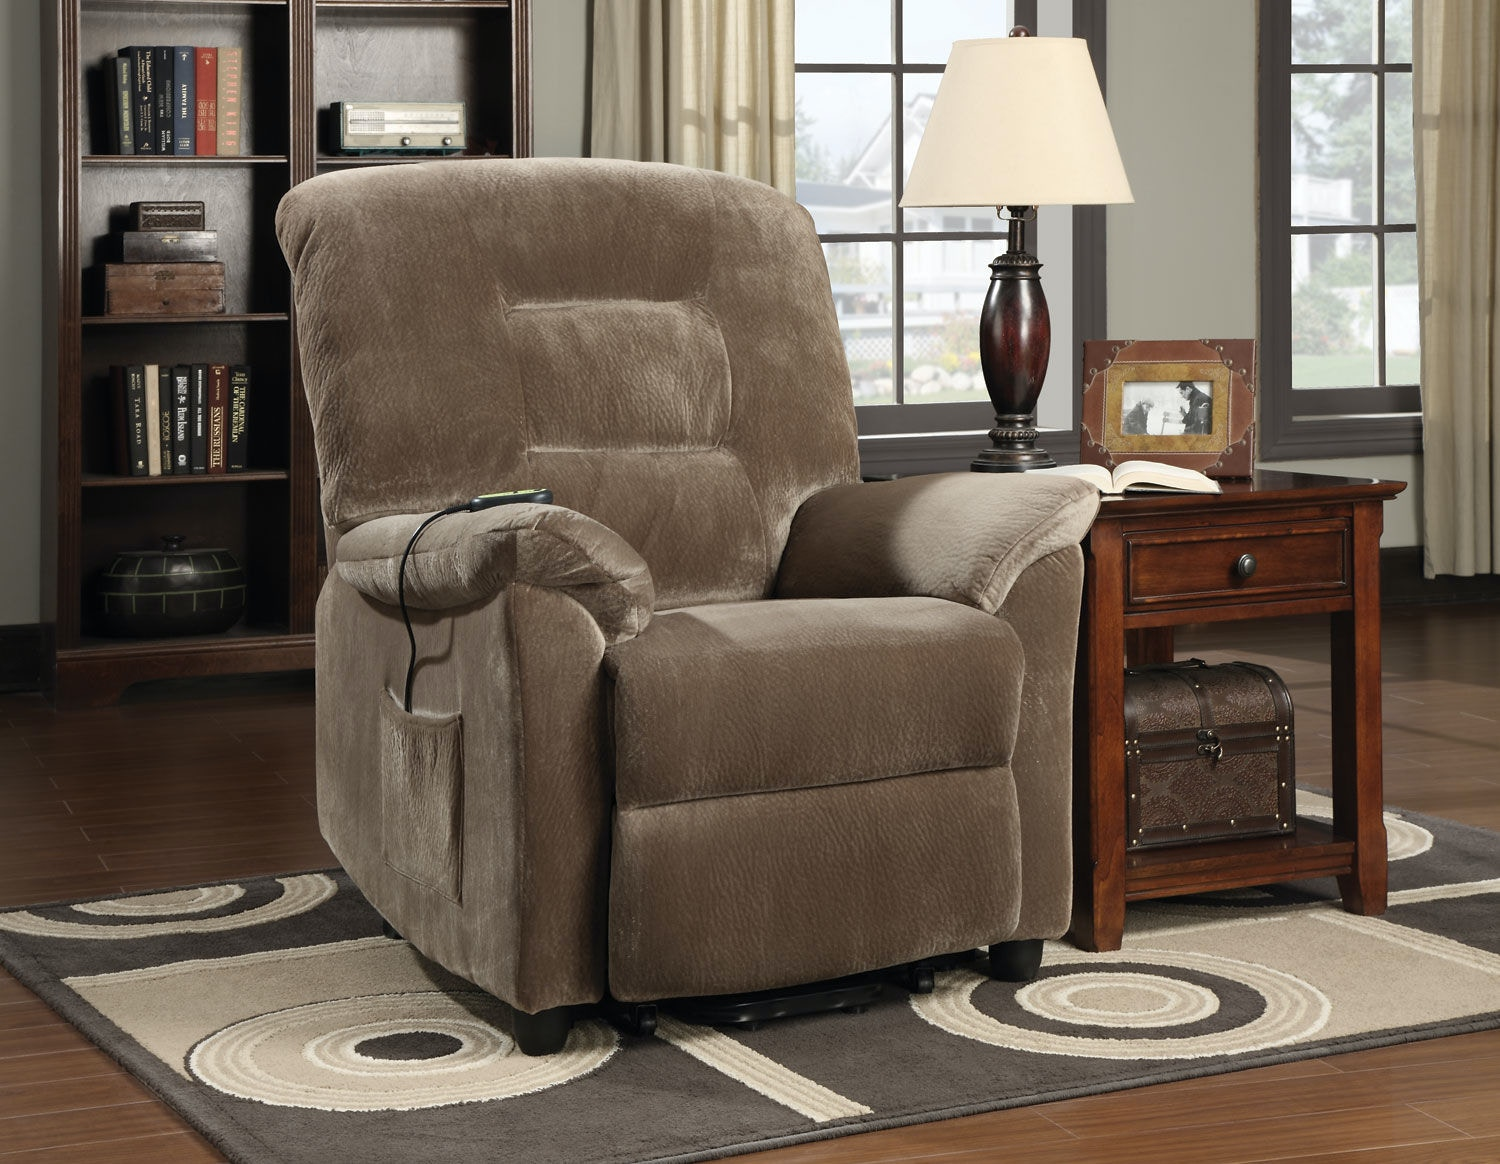 coaster living room power lift recliner 601025 home home decor furniture amp lighting in brooklyn home decor